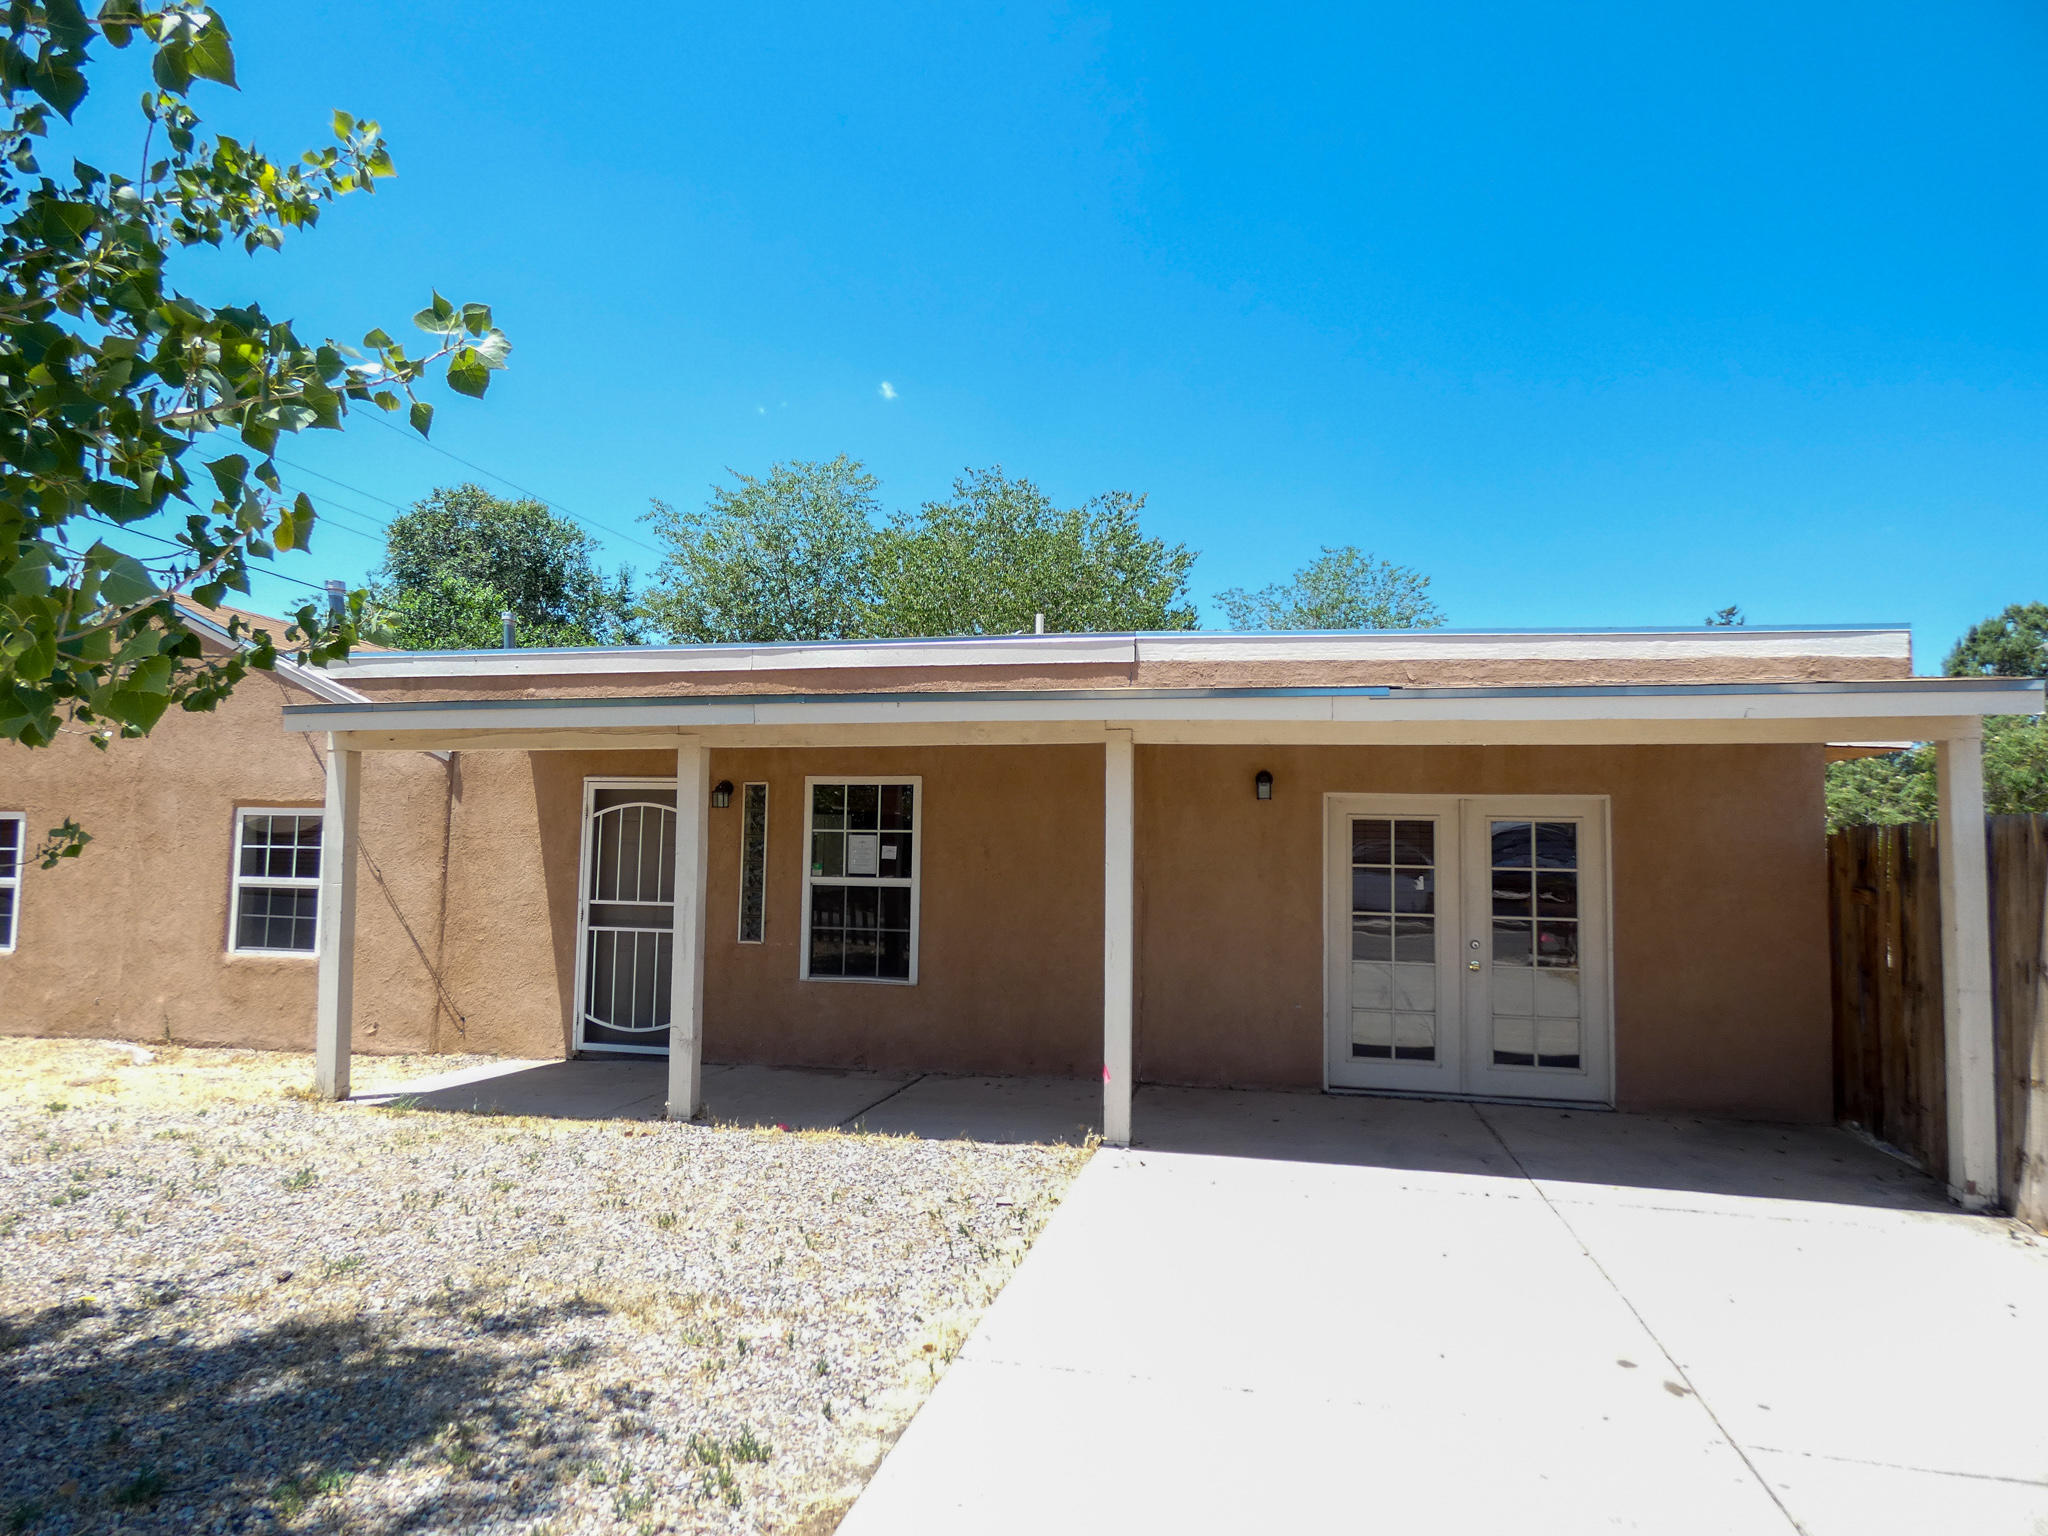 Conveniently located, close to restaurants, and shopping. Large Corner lot centrally located to downtown and interstate.Owner occupant bids accepted thru 7/16/2020 @ 10:59 PM MST. HUD homes are Sold As Is. No pre closing repairs or payments will be made for any reason. Home is insurable for FHA financing. For Utility Turn Ons: Approval must be granted in advance from HUDs Field Svc Mgr. In cases where plumbing deficiencies exist approval for water turn on may be denied. Review PCR for utility turn on information. PCR is not to be relied upon in lieu of a home inspection. ''Insurability subject to buyer's new appraisal.'' Equal Housing Opportunity $100 down payment on this HUD Home if financed with FHA-insured financing for Owner Occupant buyers.